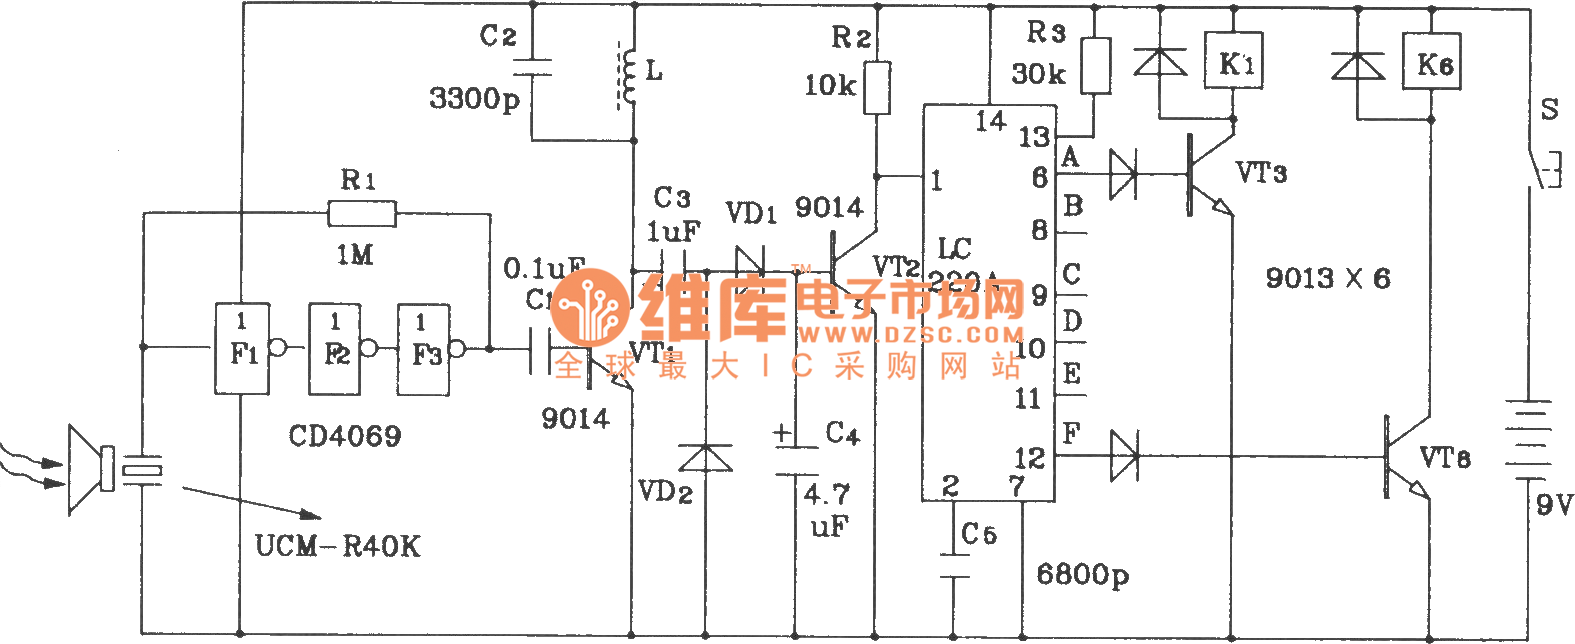 Ultrasonic 6 Road Remote Control Receiver Application Circuit Autosoundamp Powersupplycircuit Diagram Seekiccom Composed Of Lc219 220a